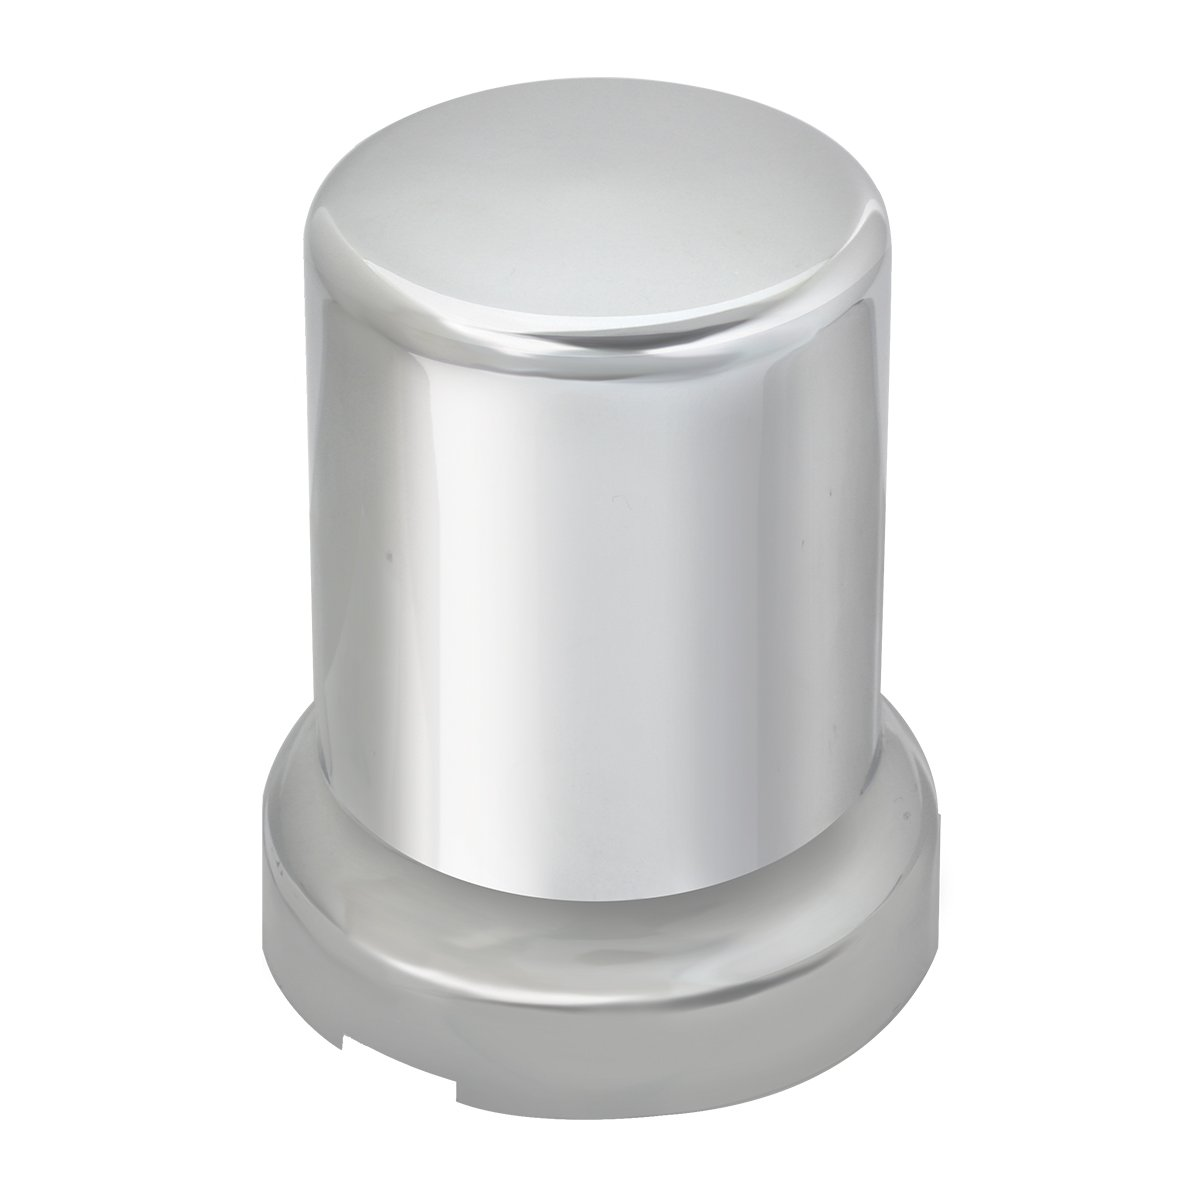 Grand General 10275SP Chrome 33mm x 2-5//8 Plastic Push-On Nut Cover with Flange and Stainless Steel Clips